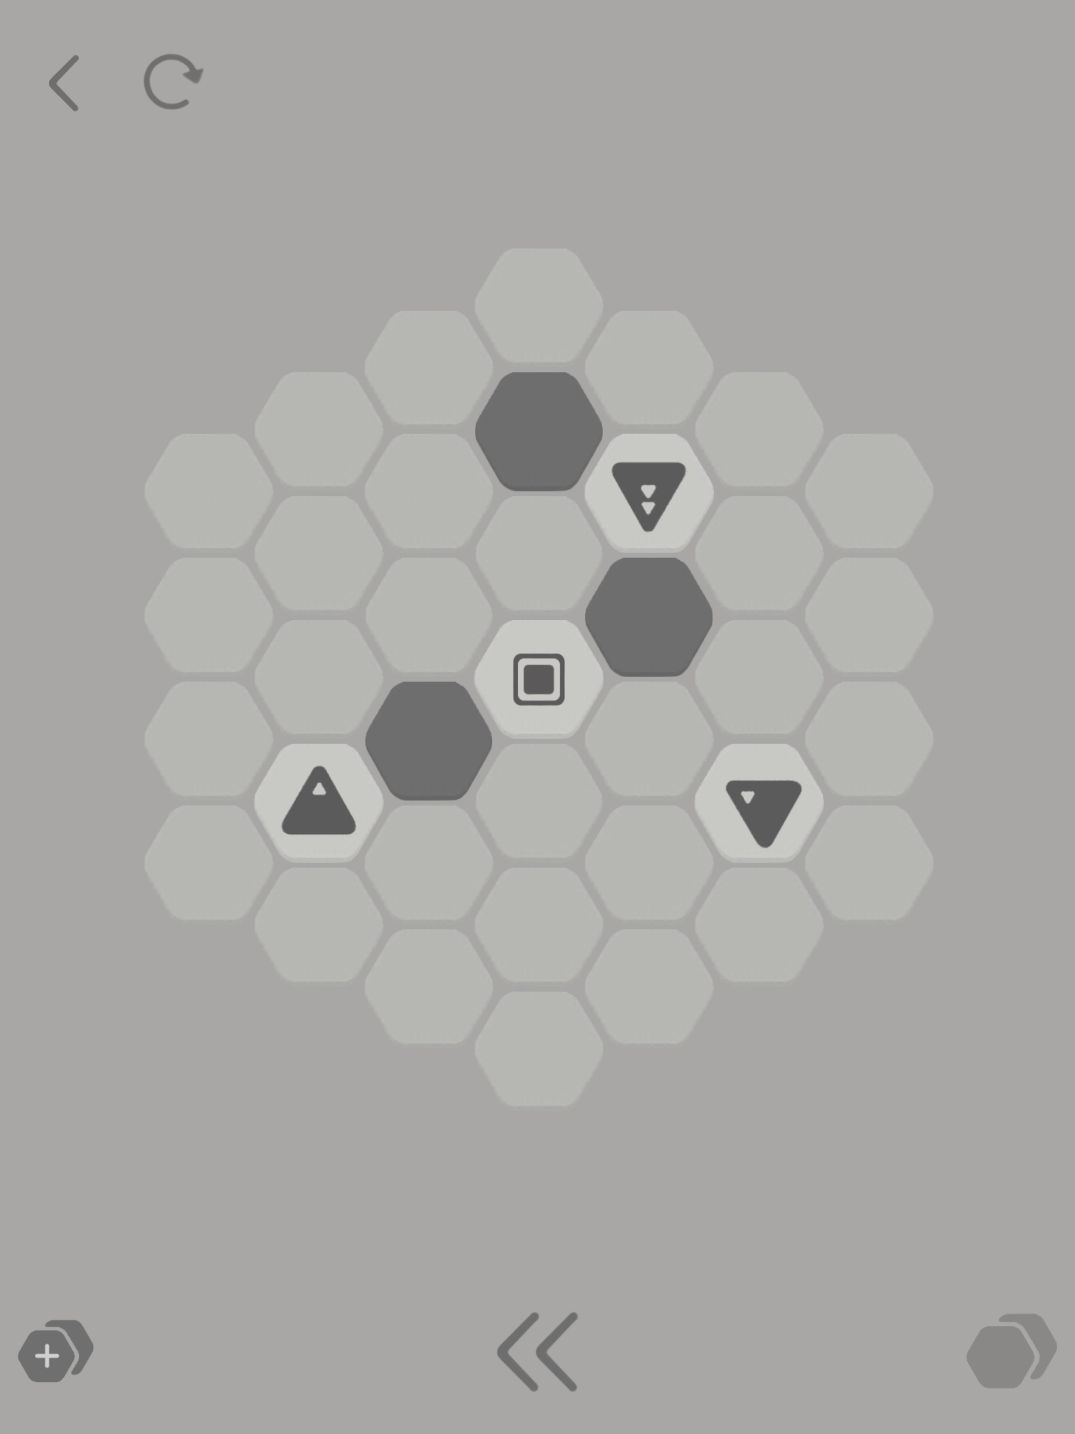 Hexa Turn (copie d'écran 6 sur Android)